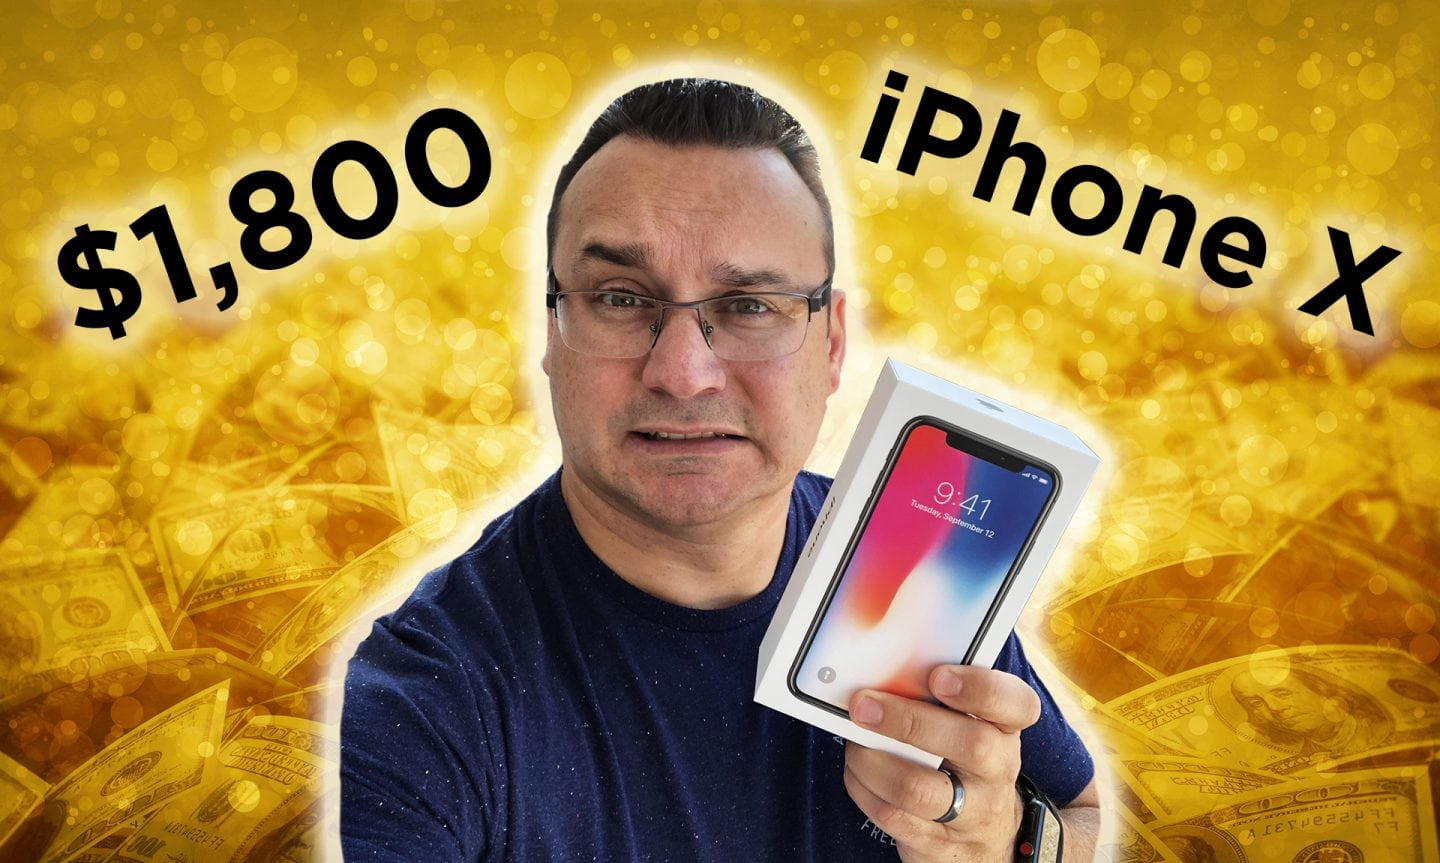 My $1,800 iPhone X